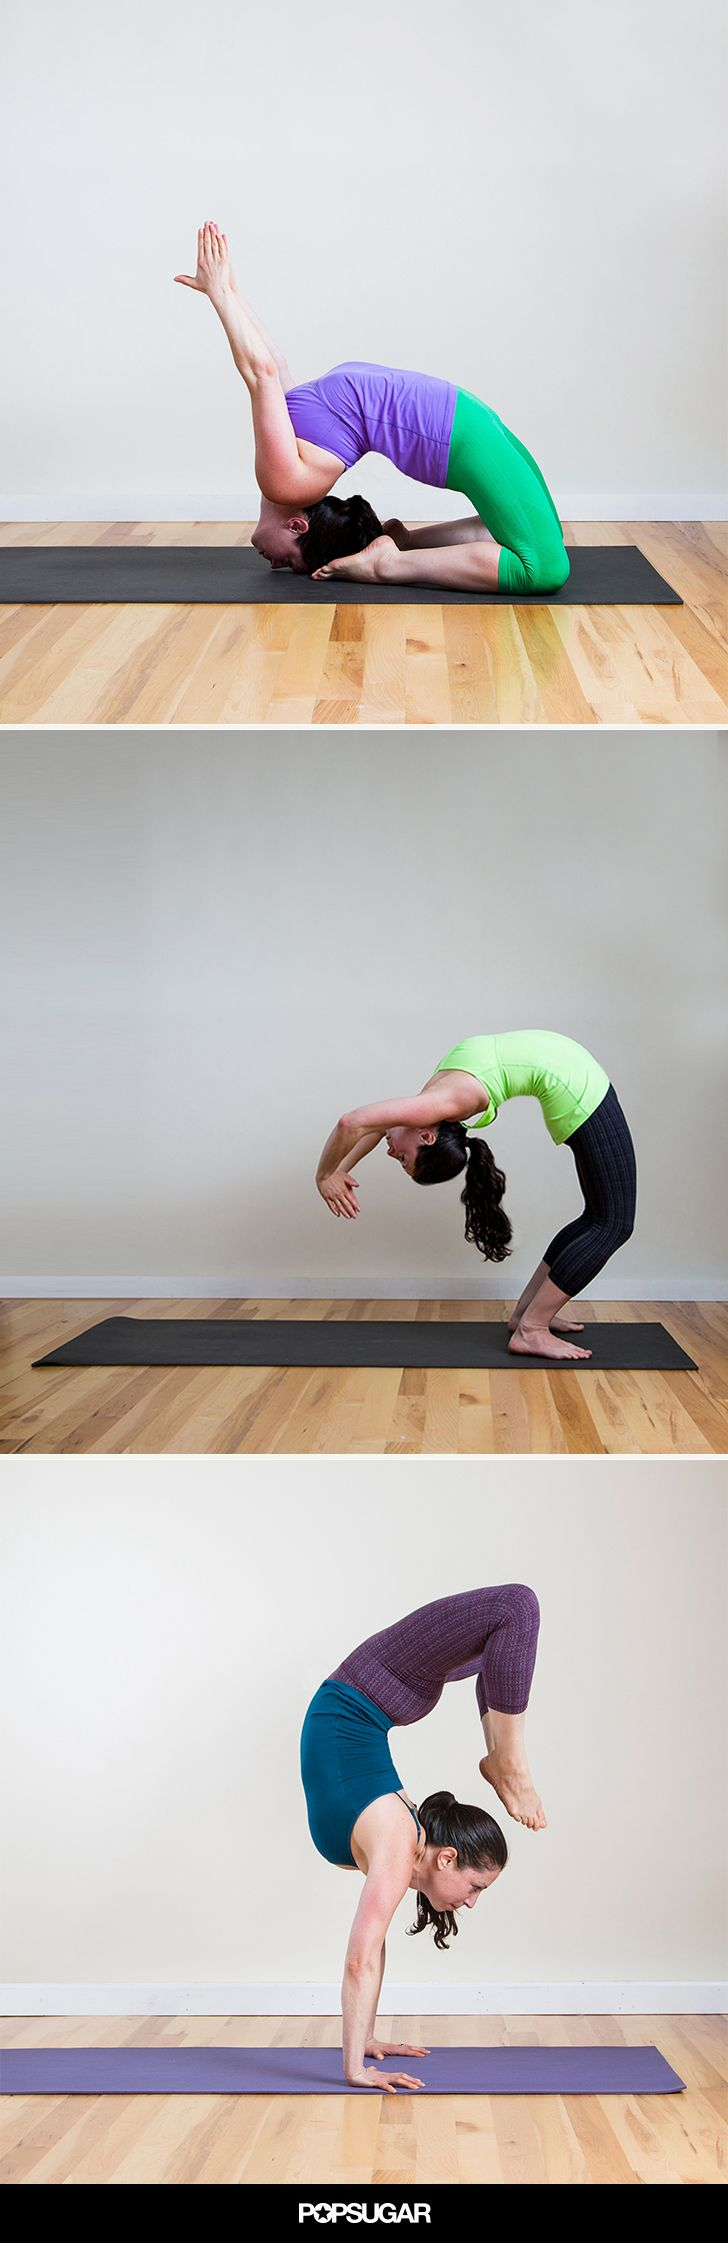 Photos of 25 advanced yoga poses to challenge your practice (or just to be inspired by!)